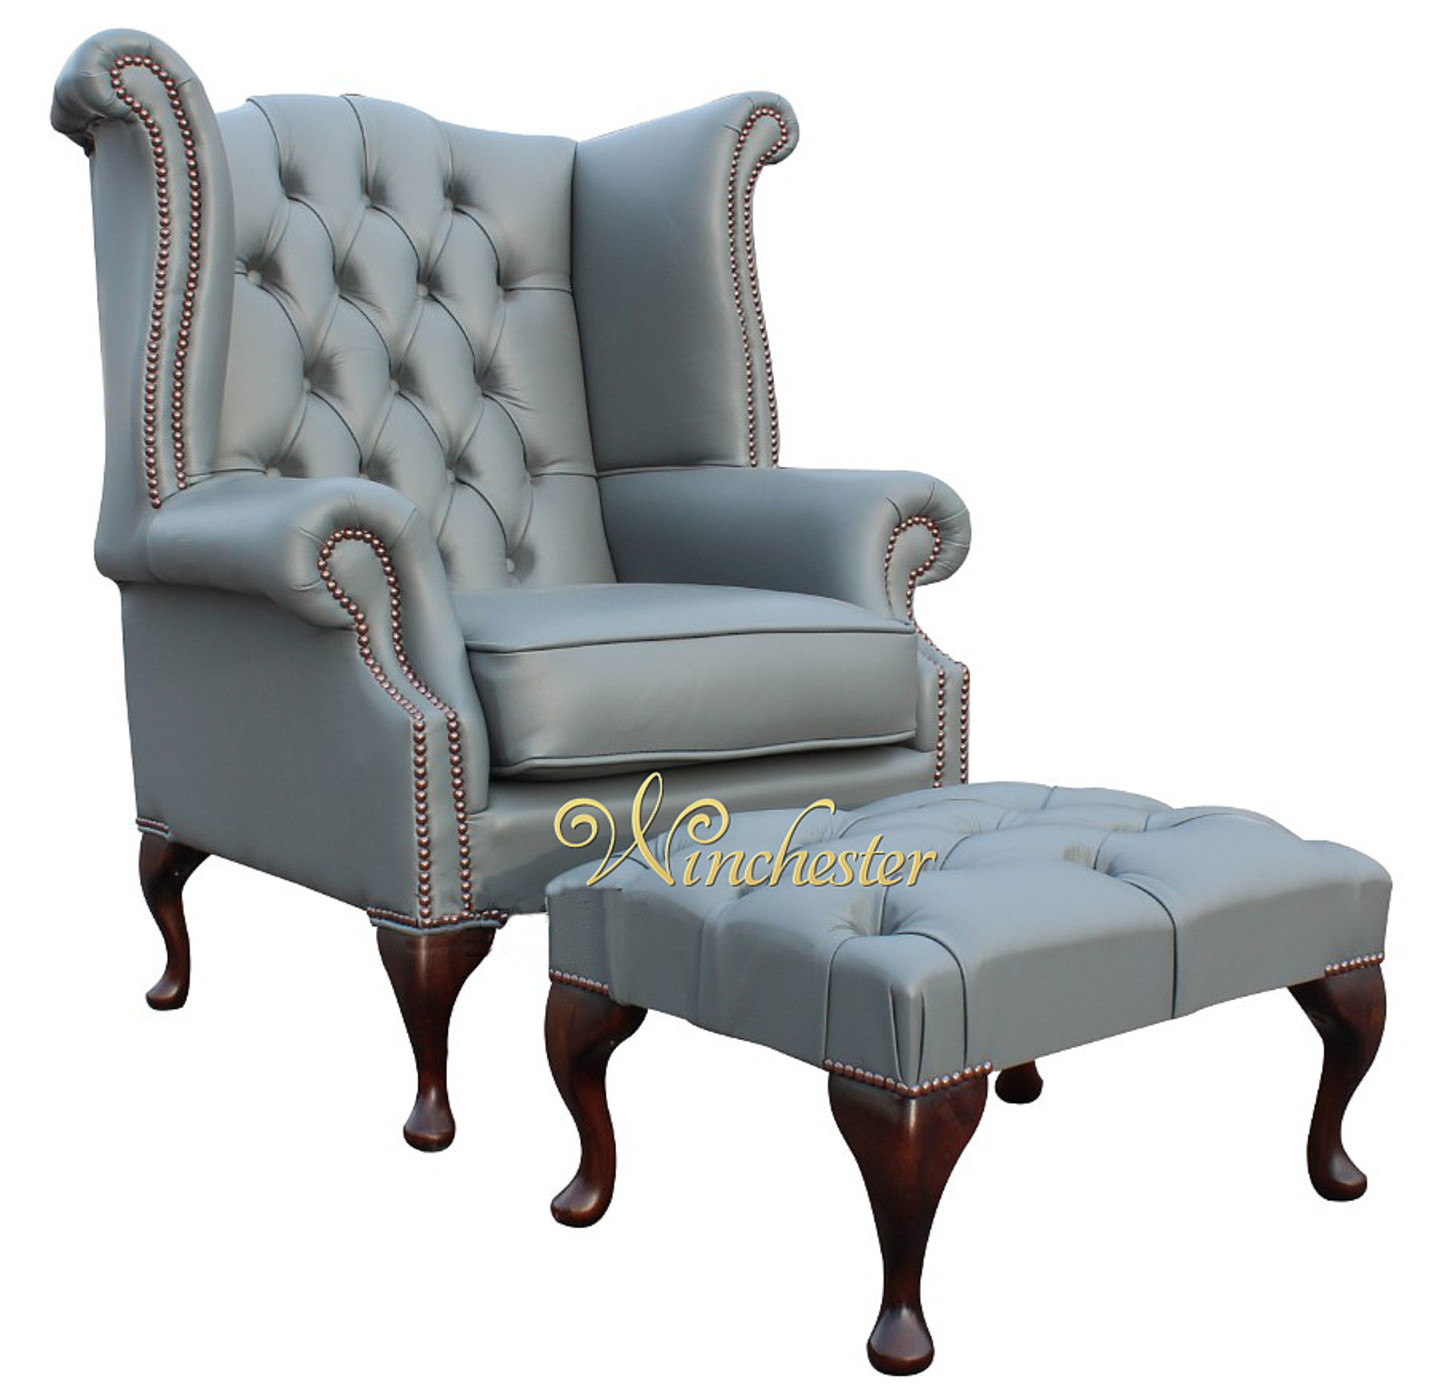 Chesterfield Queen Anne Wing Chair Matching Queen Anne Footstool Vele Iron  Grey Wc